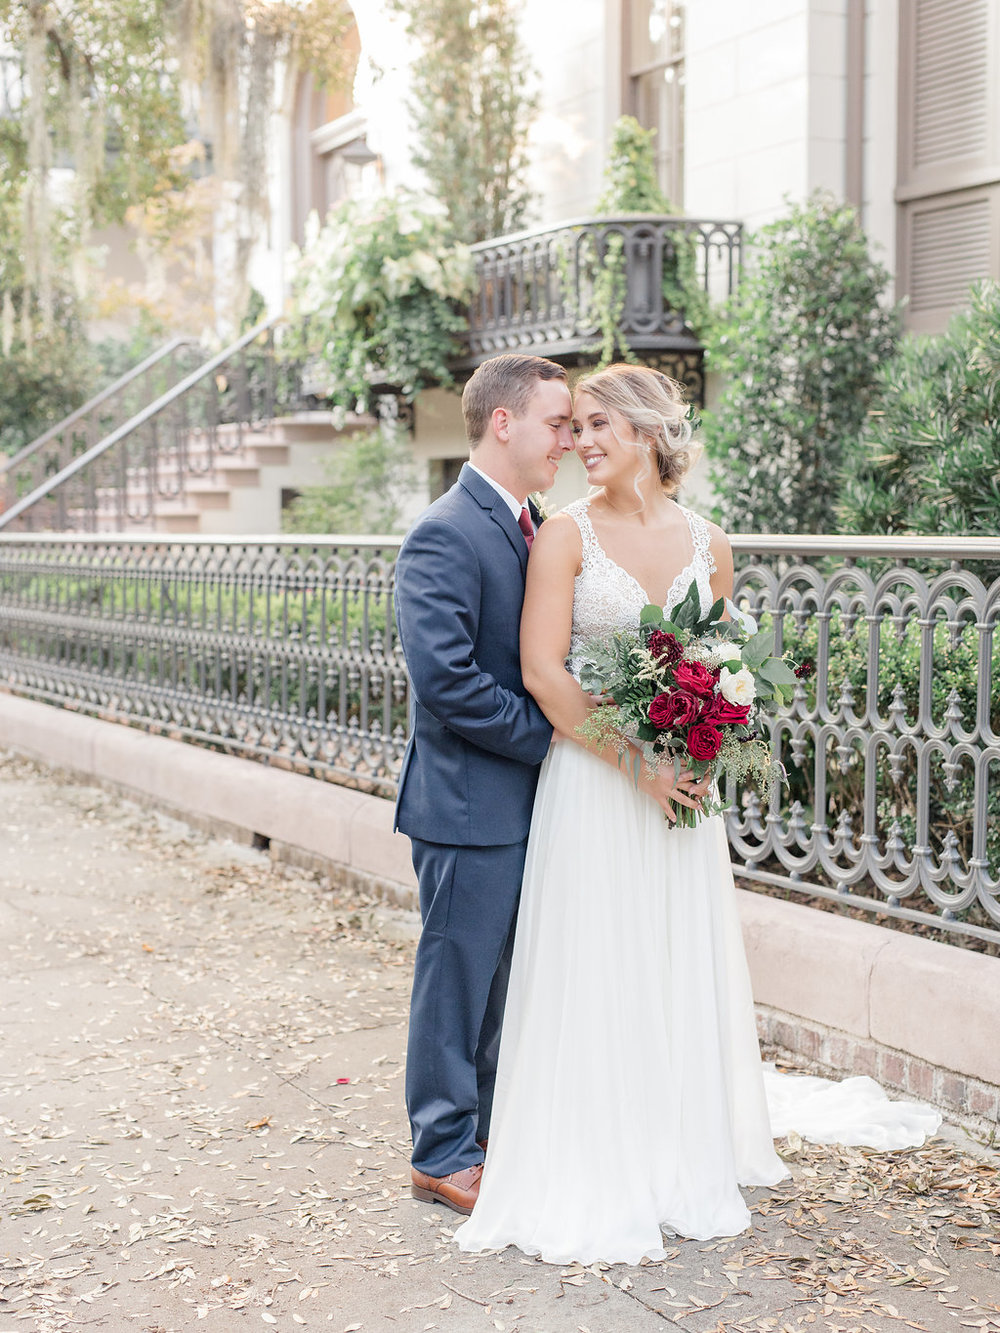 ivory-and-beau-bridal-boutique-savannah-wedding-dress-savannah-wedding-gown-savannah-bridal-boutique-savannah-wedding-planner-savannah-florist-11.jpg